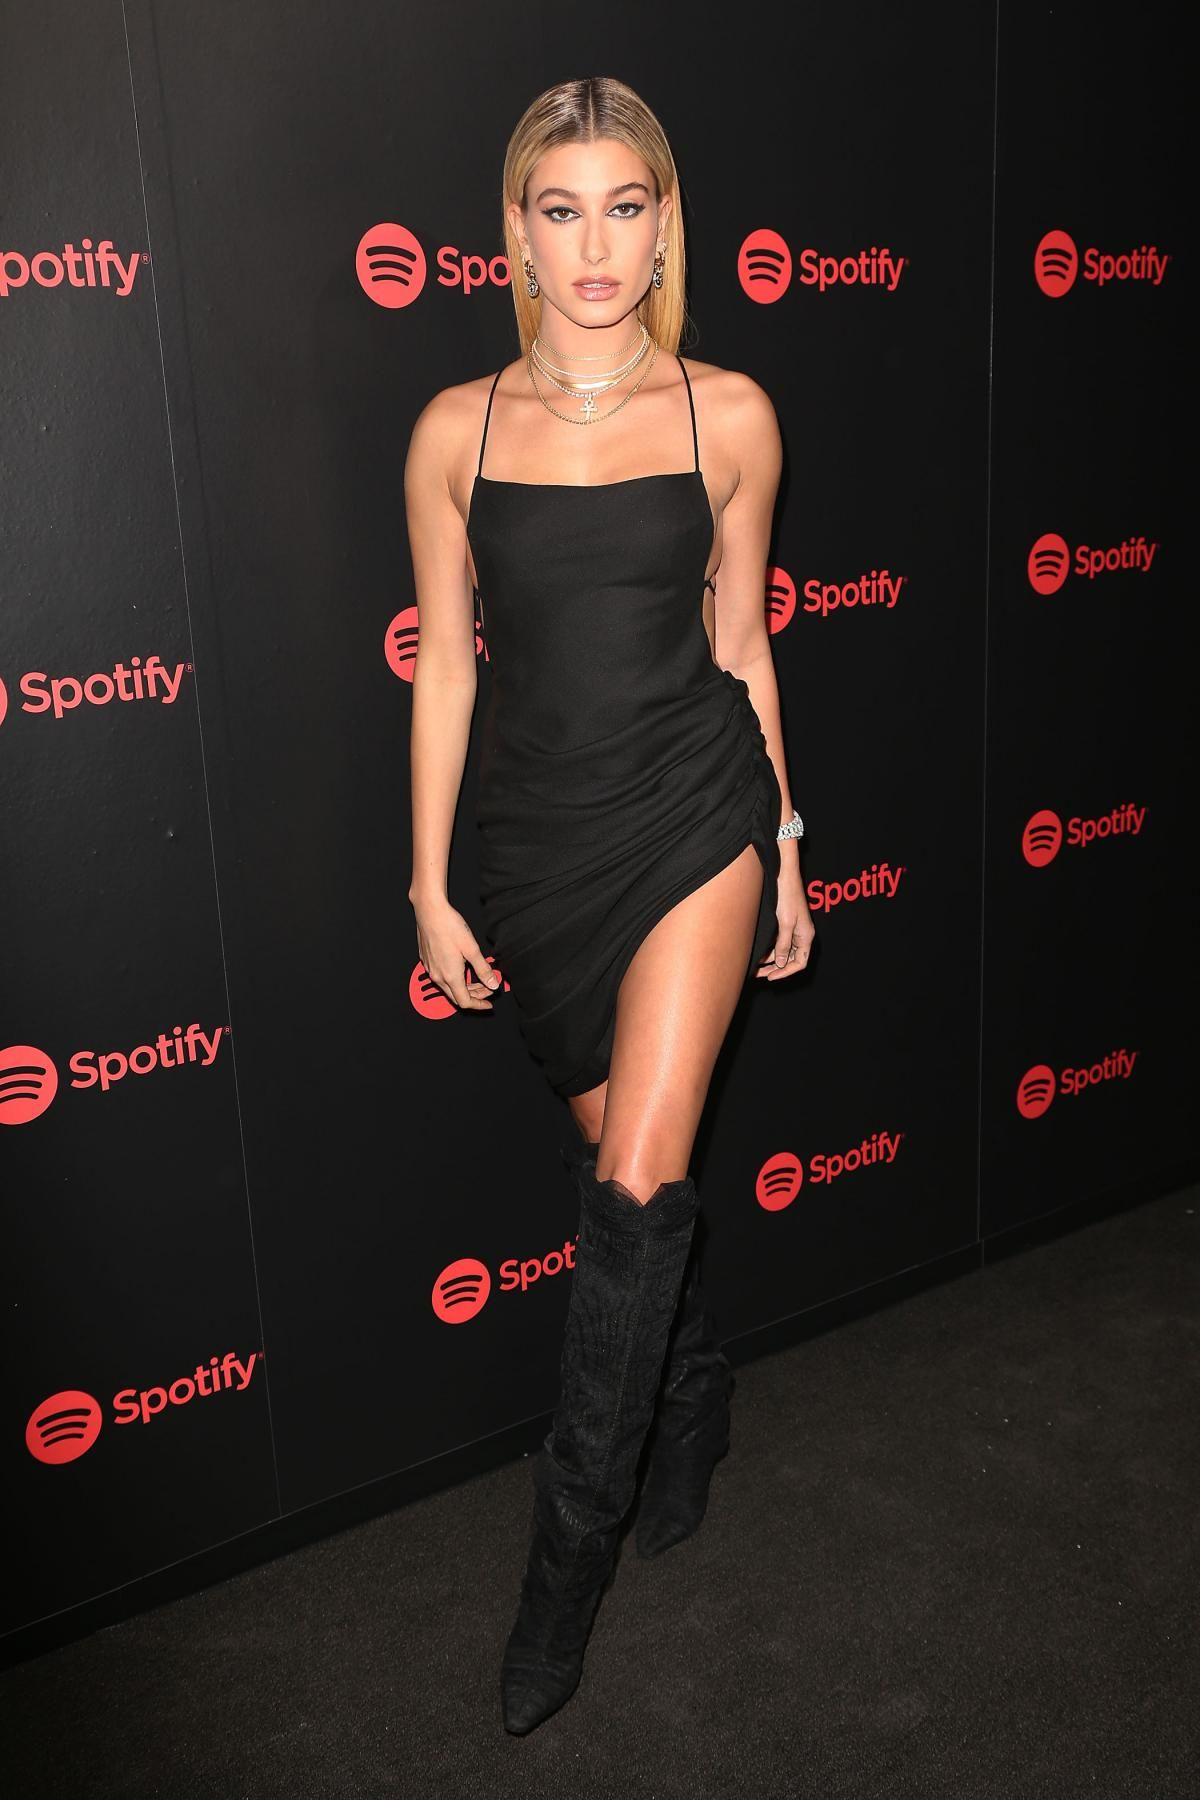 Hailey Baldwin Spotify Best New Artists Party January 25 2018 Arnaude Sandals Pink Wearing Jimmy Choo X Off White Elisabeth Boots And Jacquemus Spring Suadade Dress